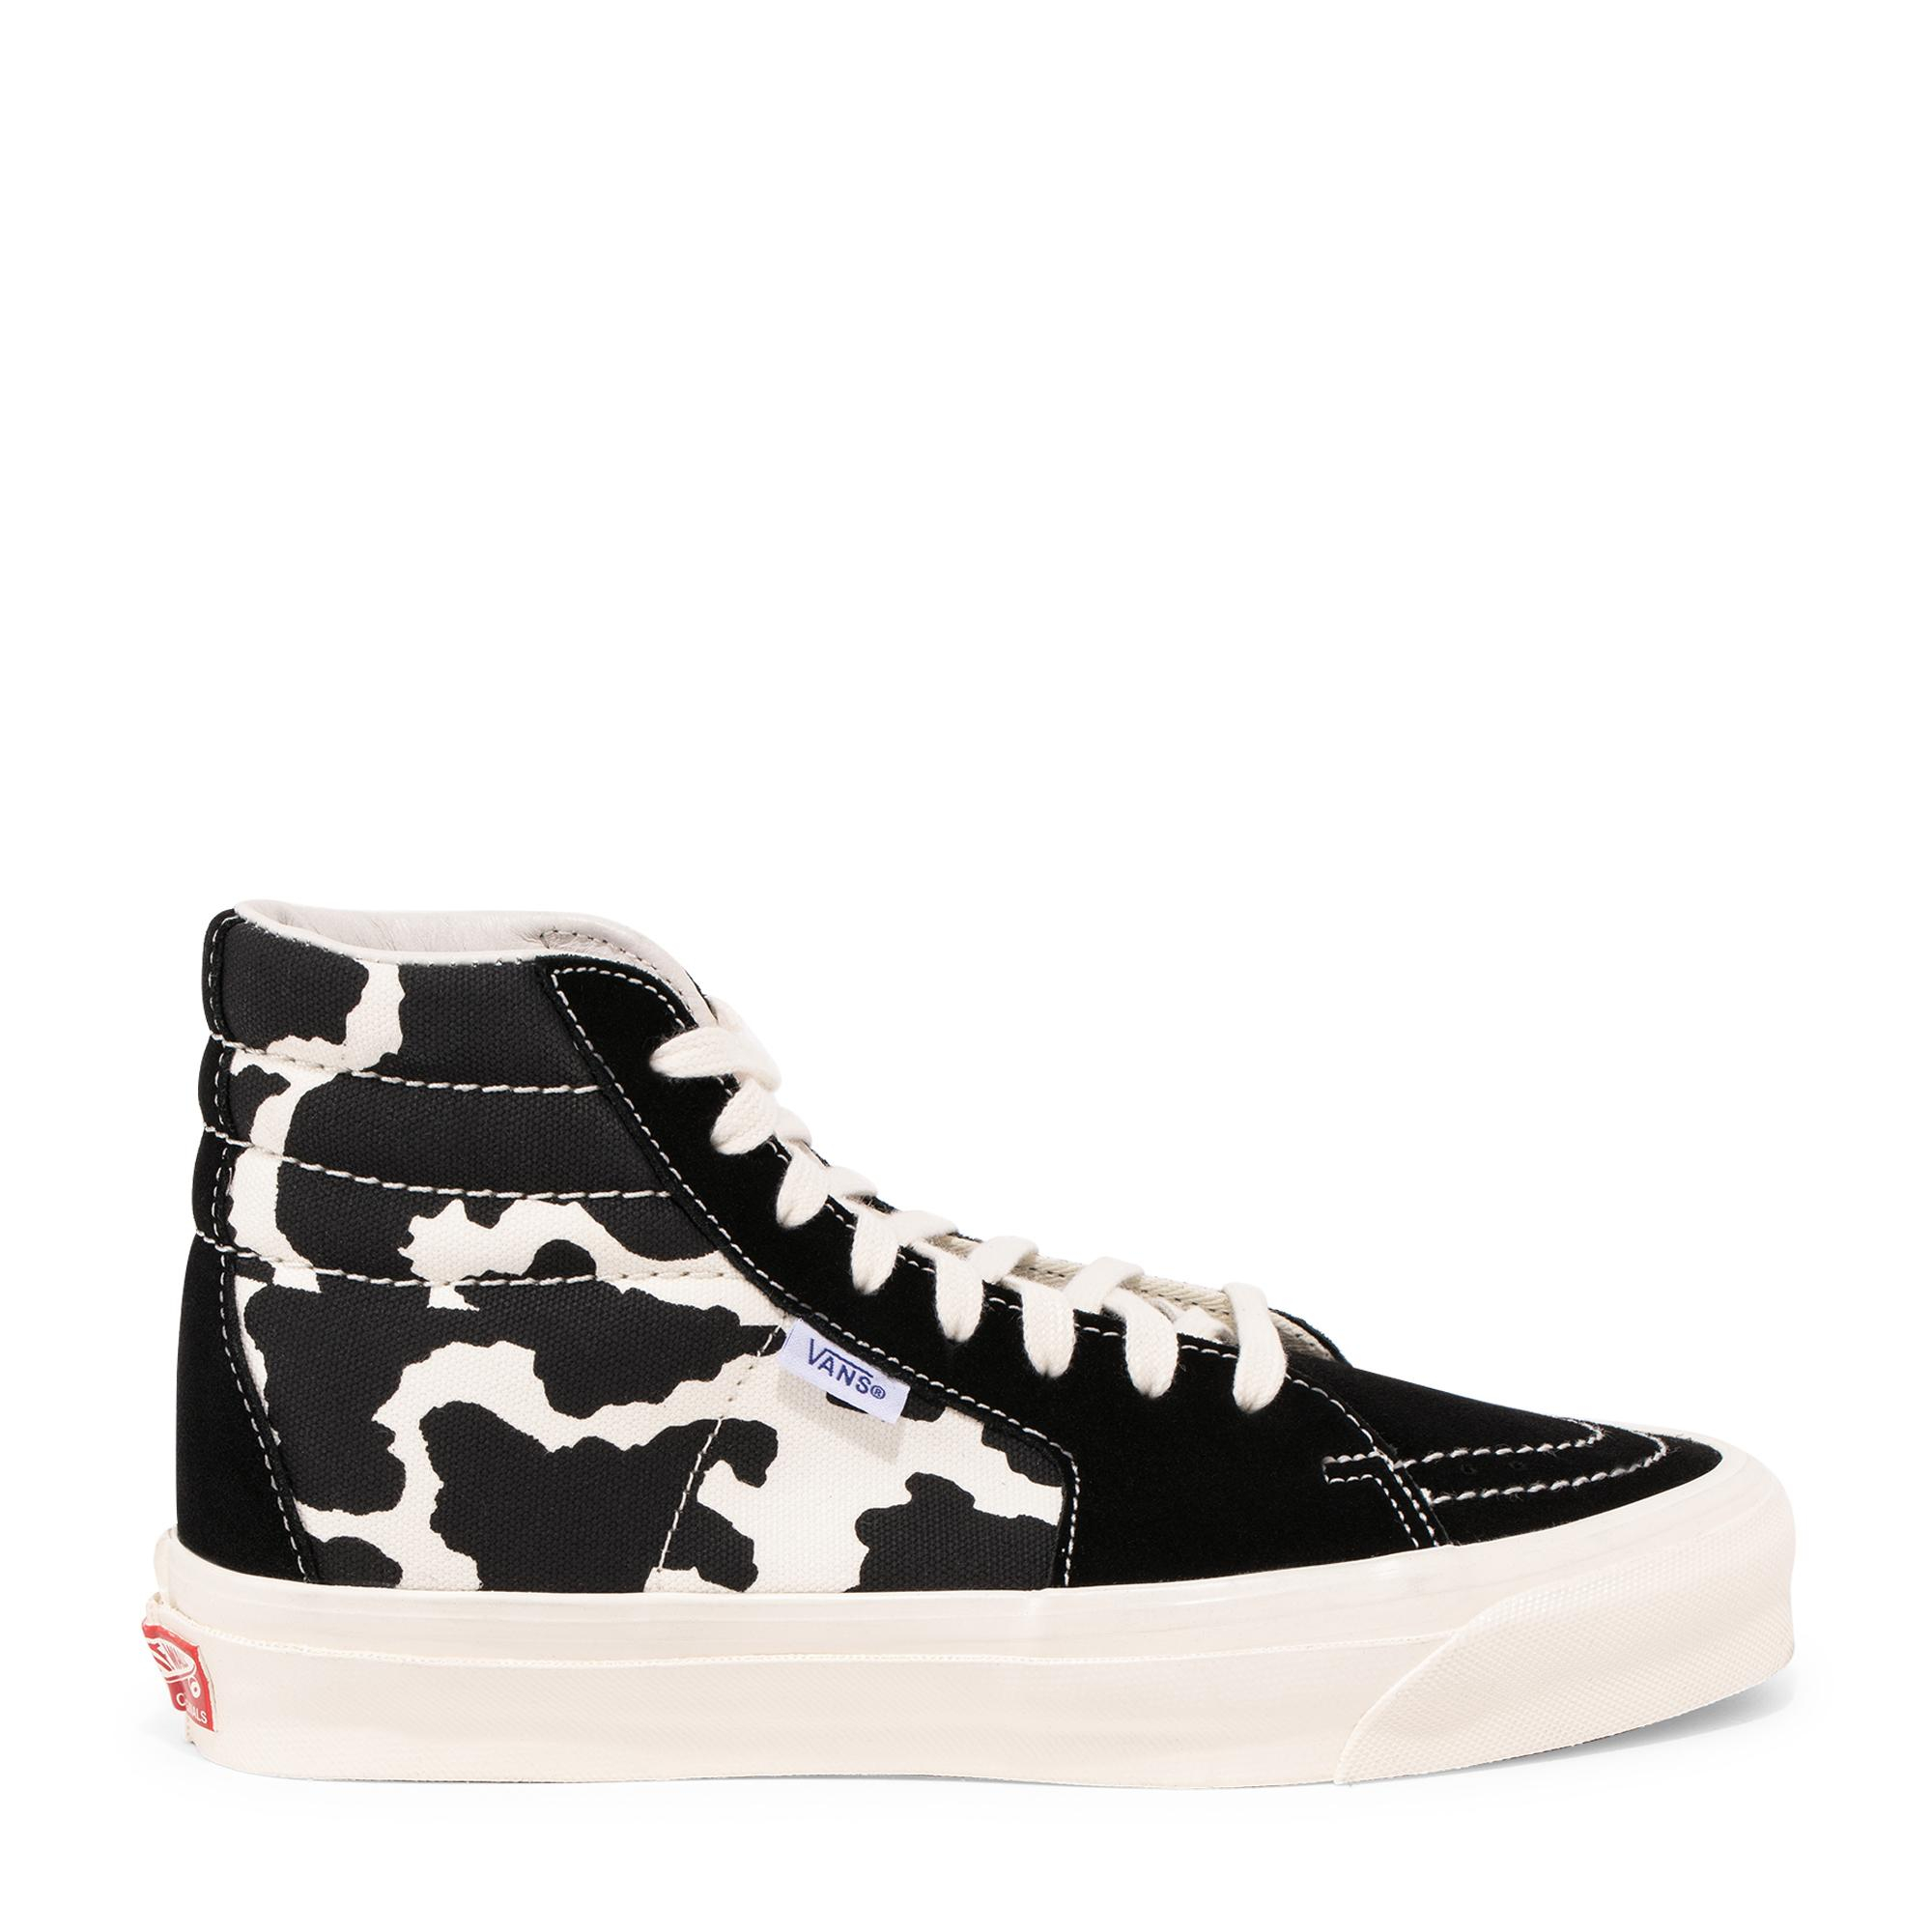 Style 38 sneakers